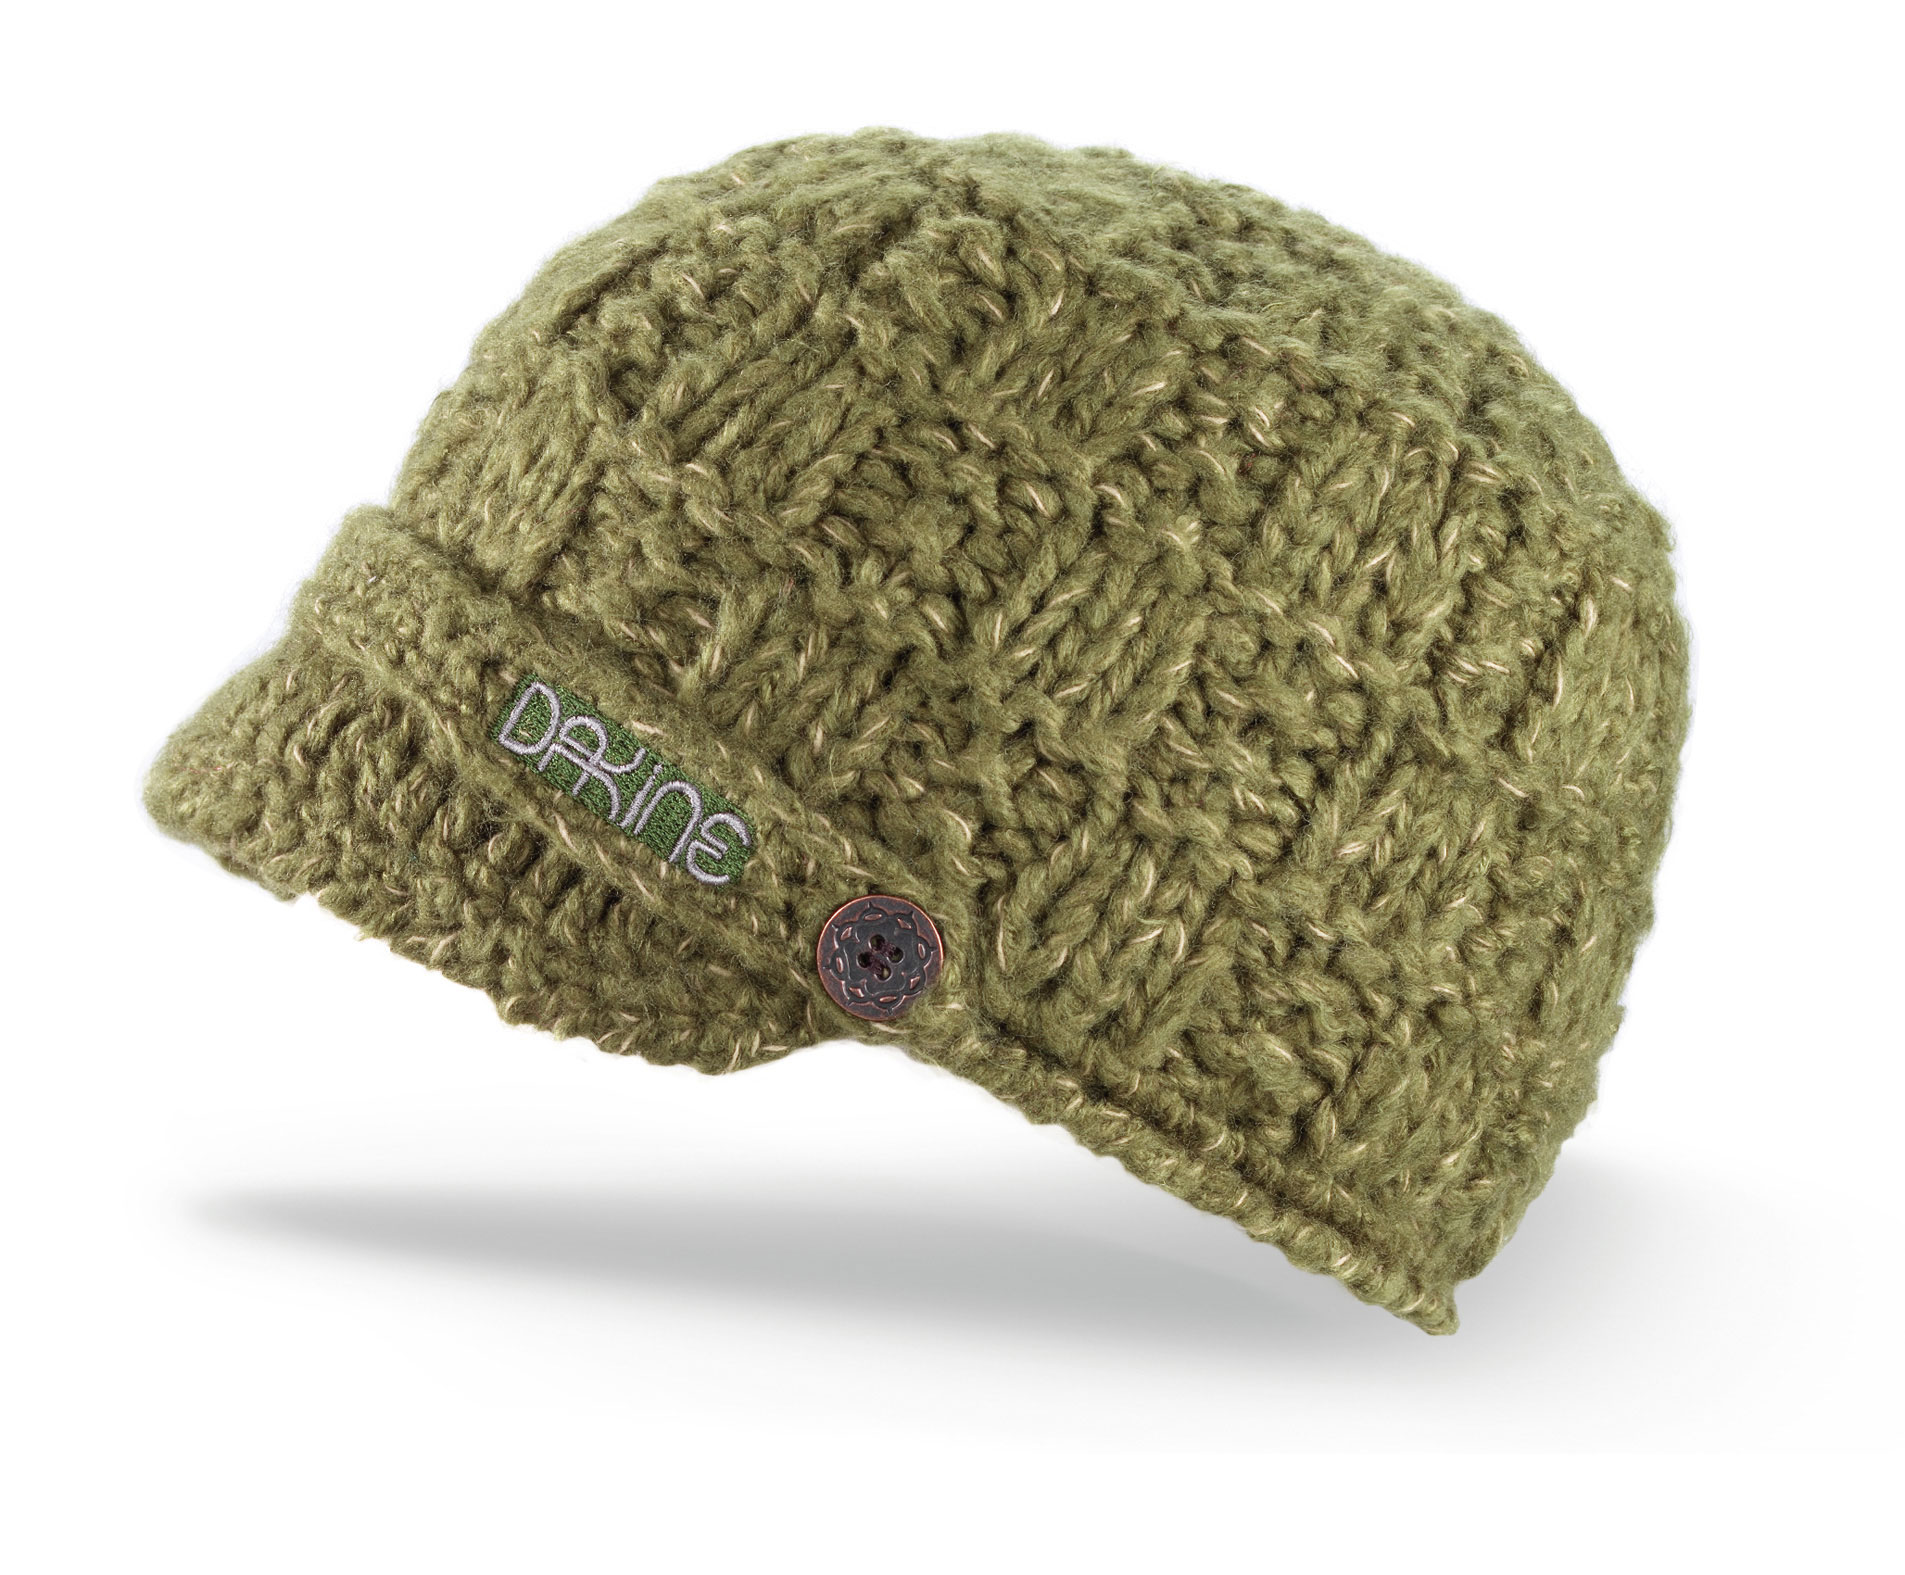 Snowboard Key Features of the Dakine Audrey Beanie: Hand crocheted basket knit Mixed acrylic/nylon yarn Full fleece lining Soft visor - $29.95